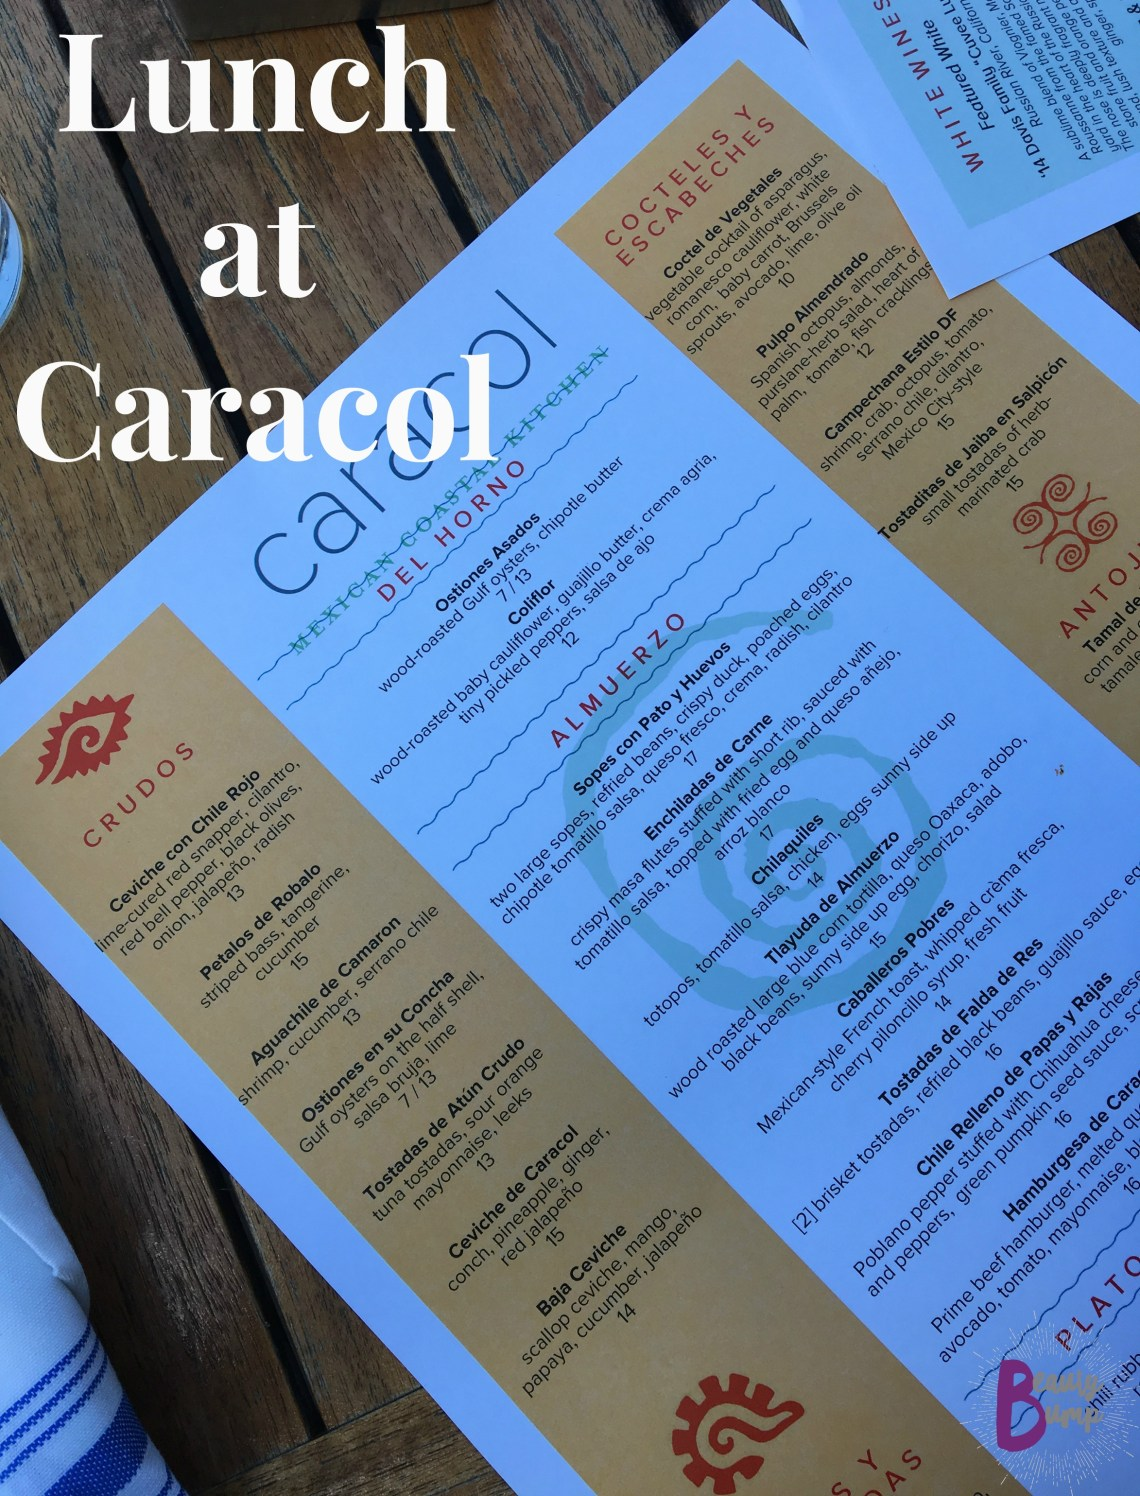 Lunch at Caracol